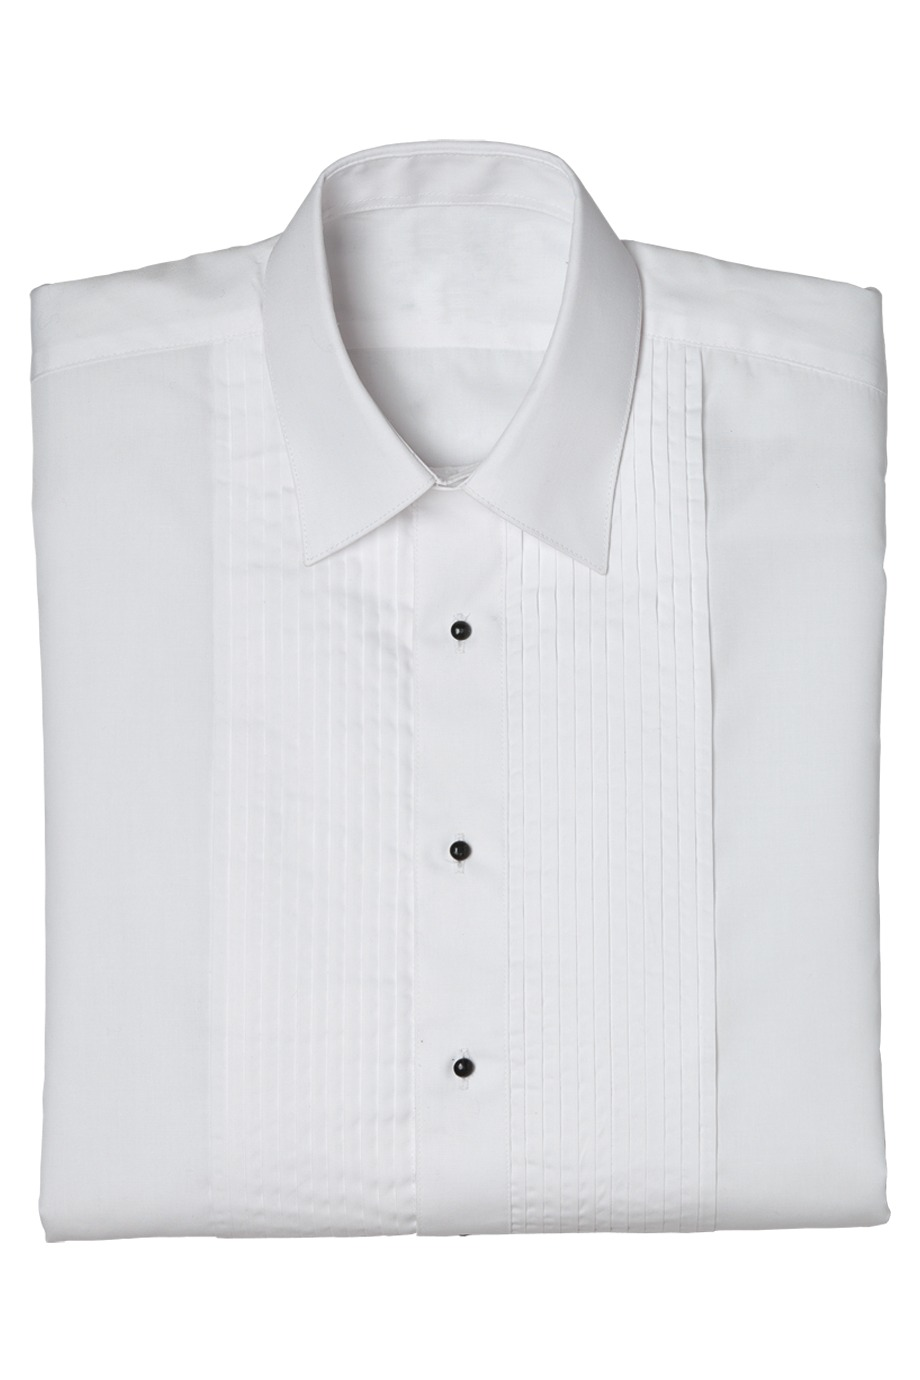 Edwards Garment 1393 - Men's Tuxedo Shirt Quarter Pleat